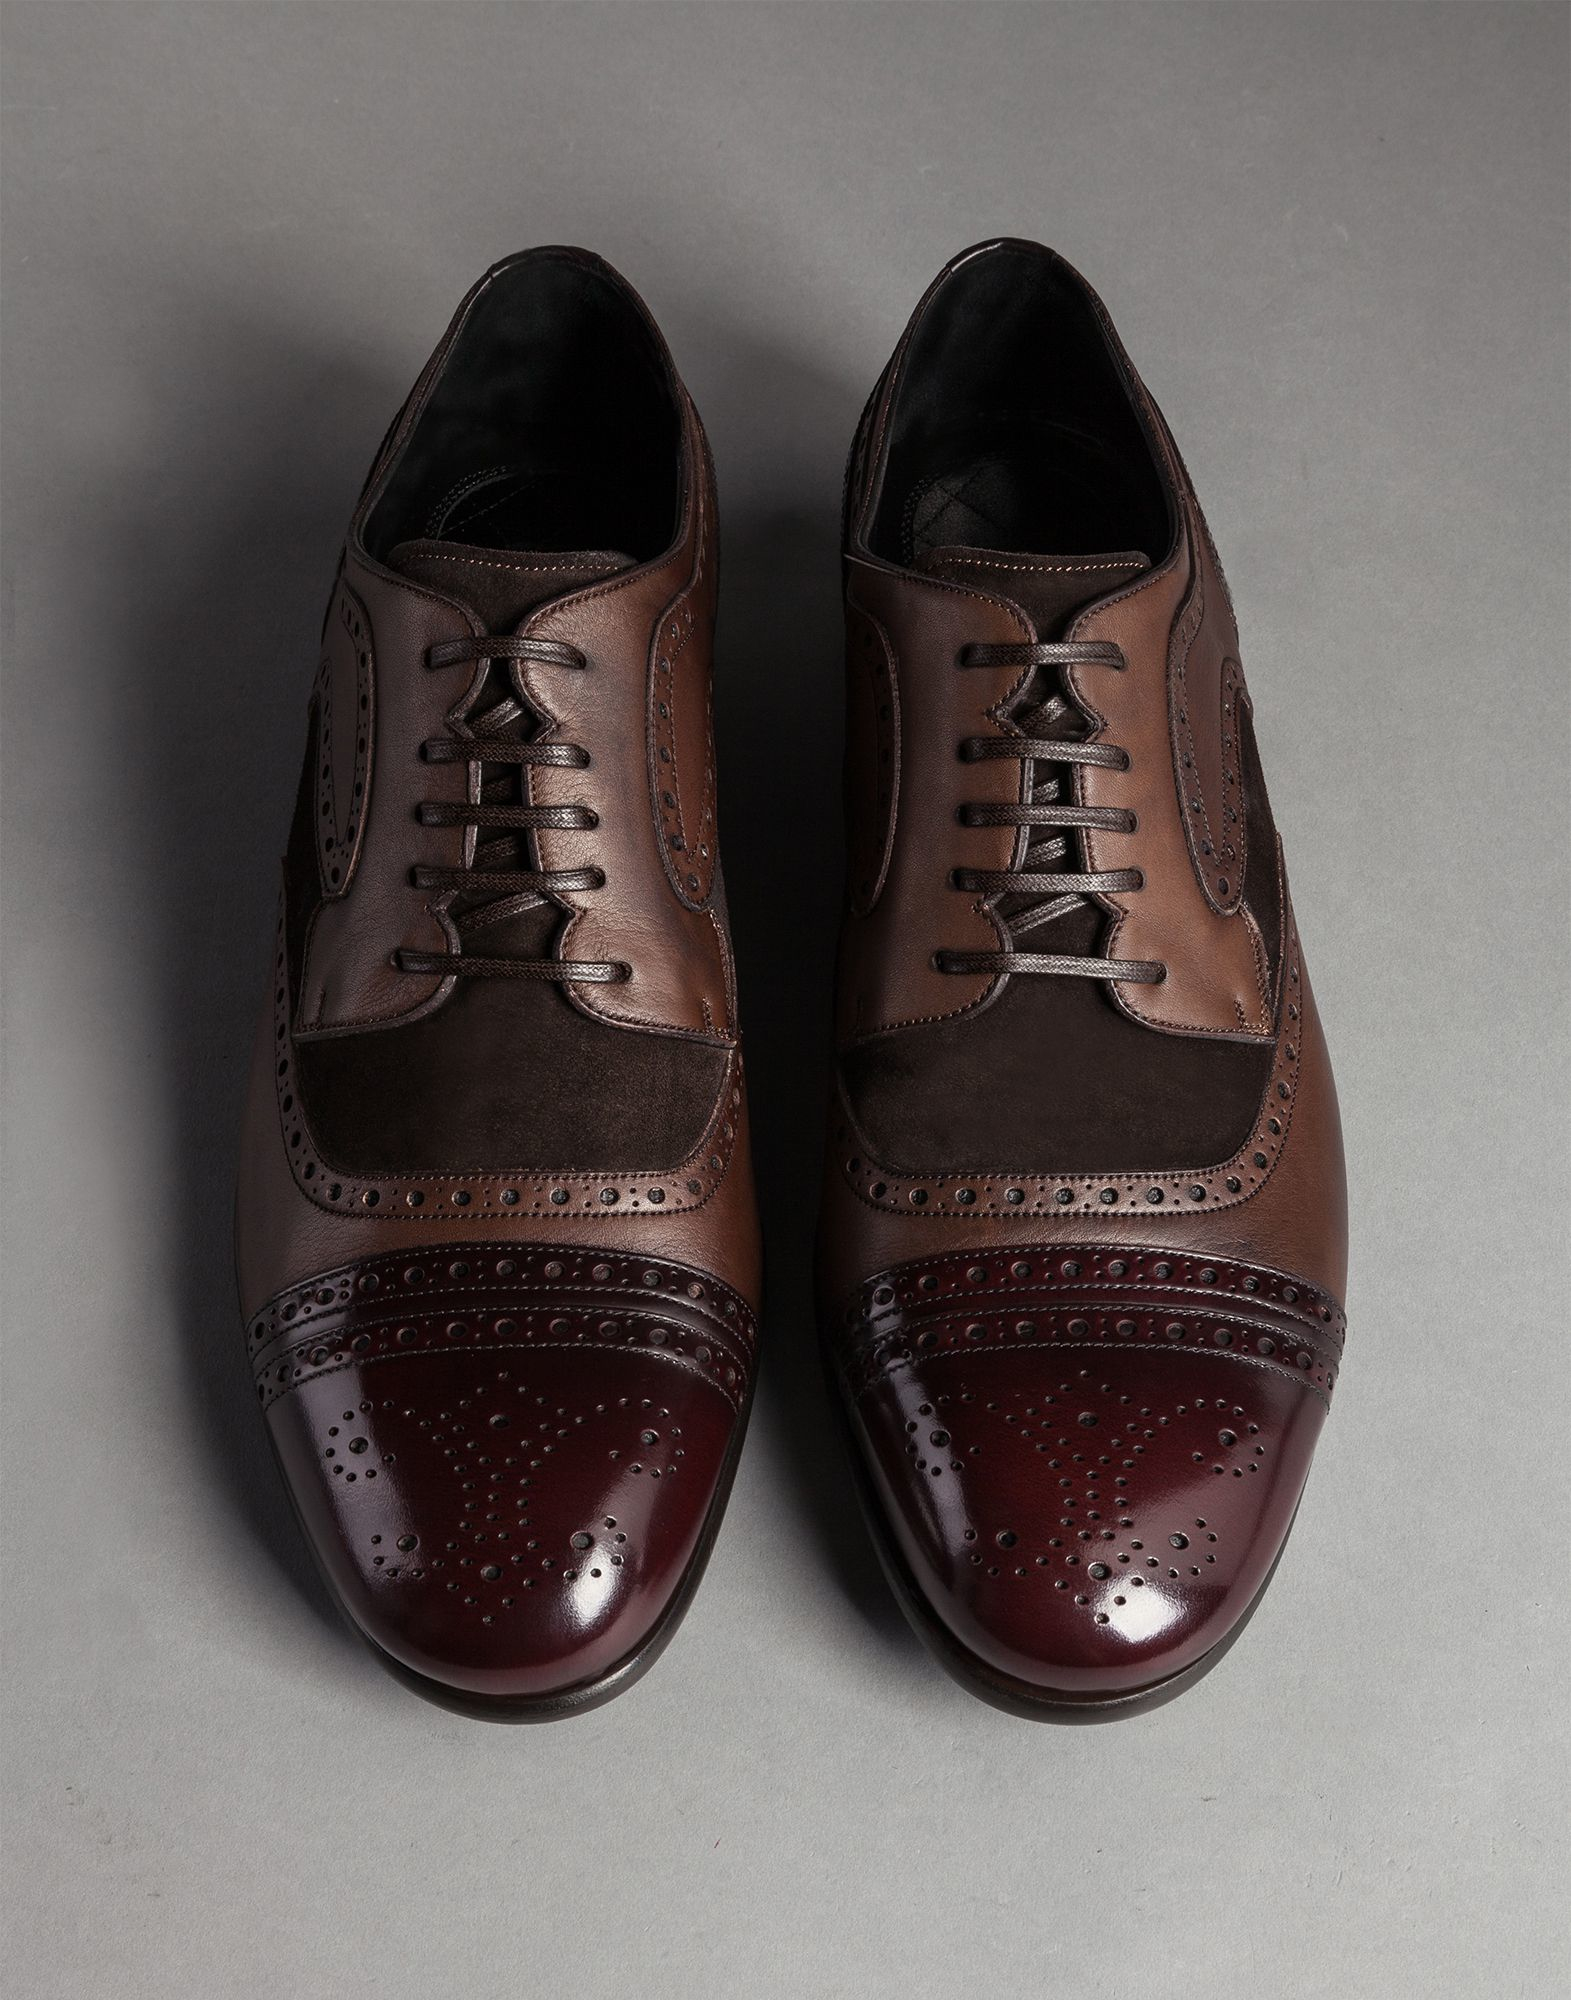 dolce gabbana vegetable tanned calfskin tailored napoli